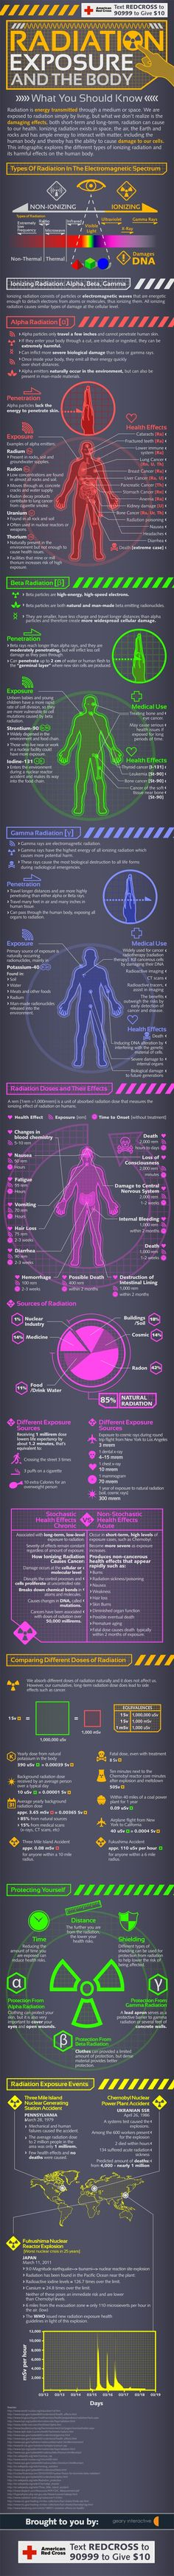 Radiation & The Body: What You Should Know #infografía